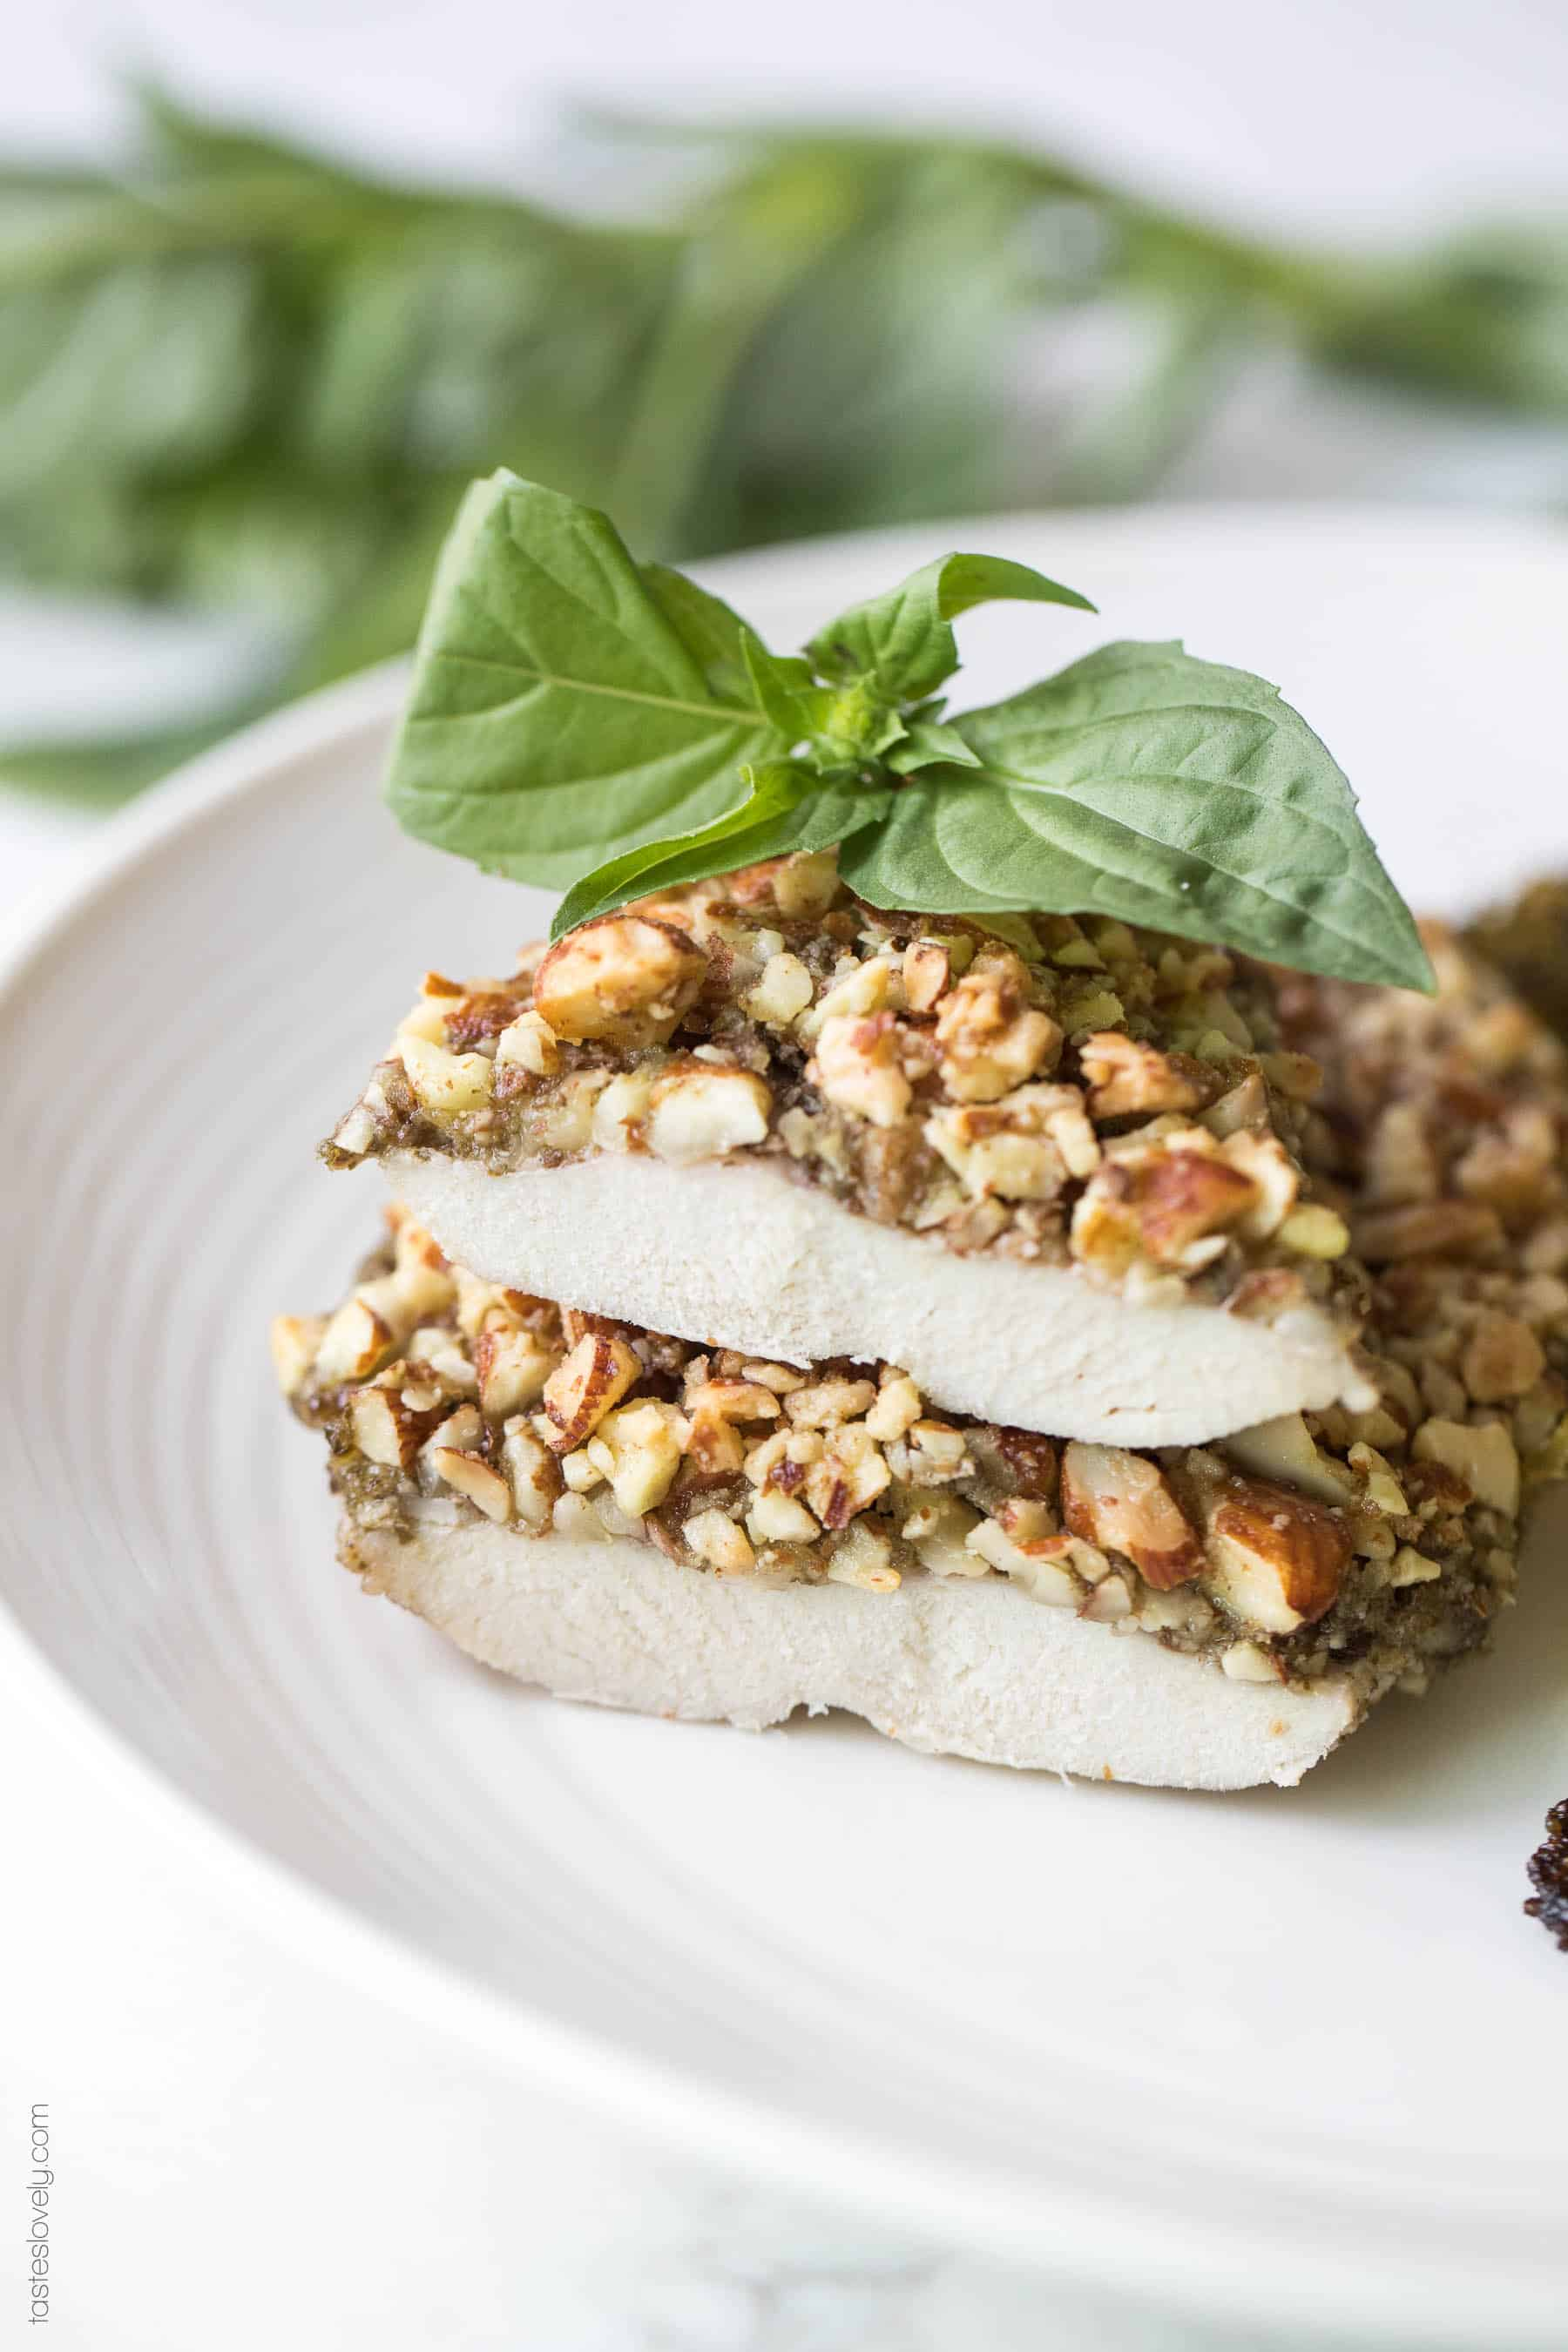 Paleo + Whole30 Almond Crusted Pesto Chicken - a quick and healthy 30 minute dinner recipe! #paleo #whole30 #glutenfree #grainfree #dairyfree #sugarfree #keto #cleaneating #realfood